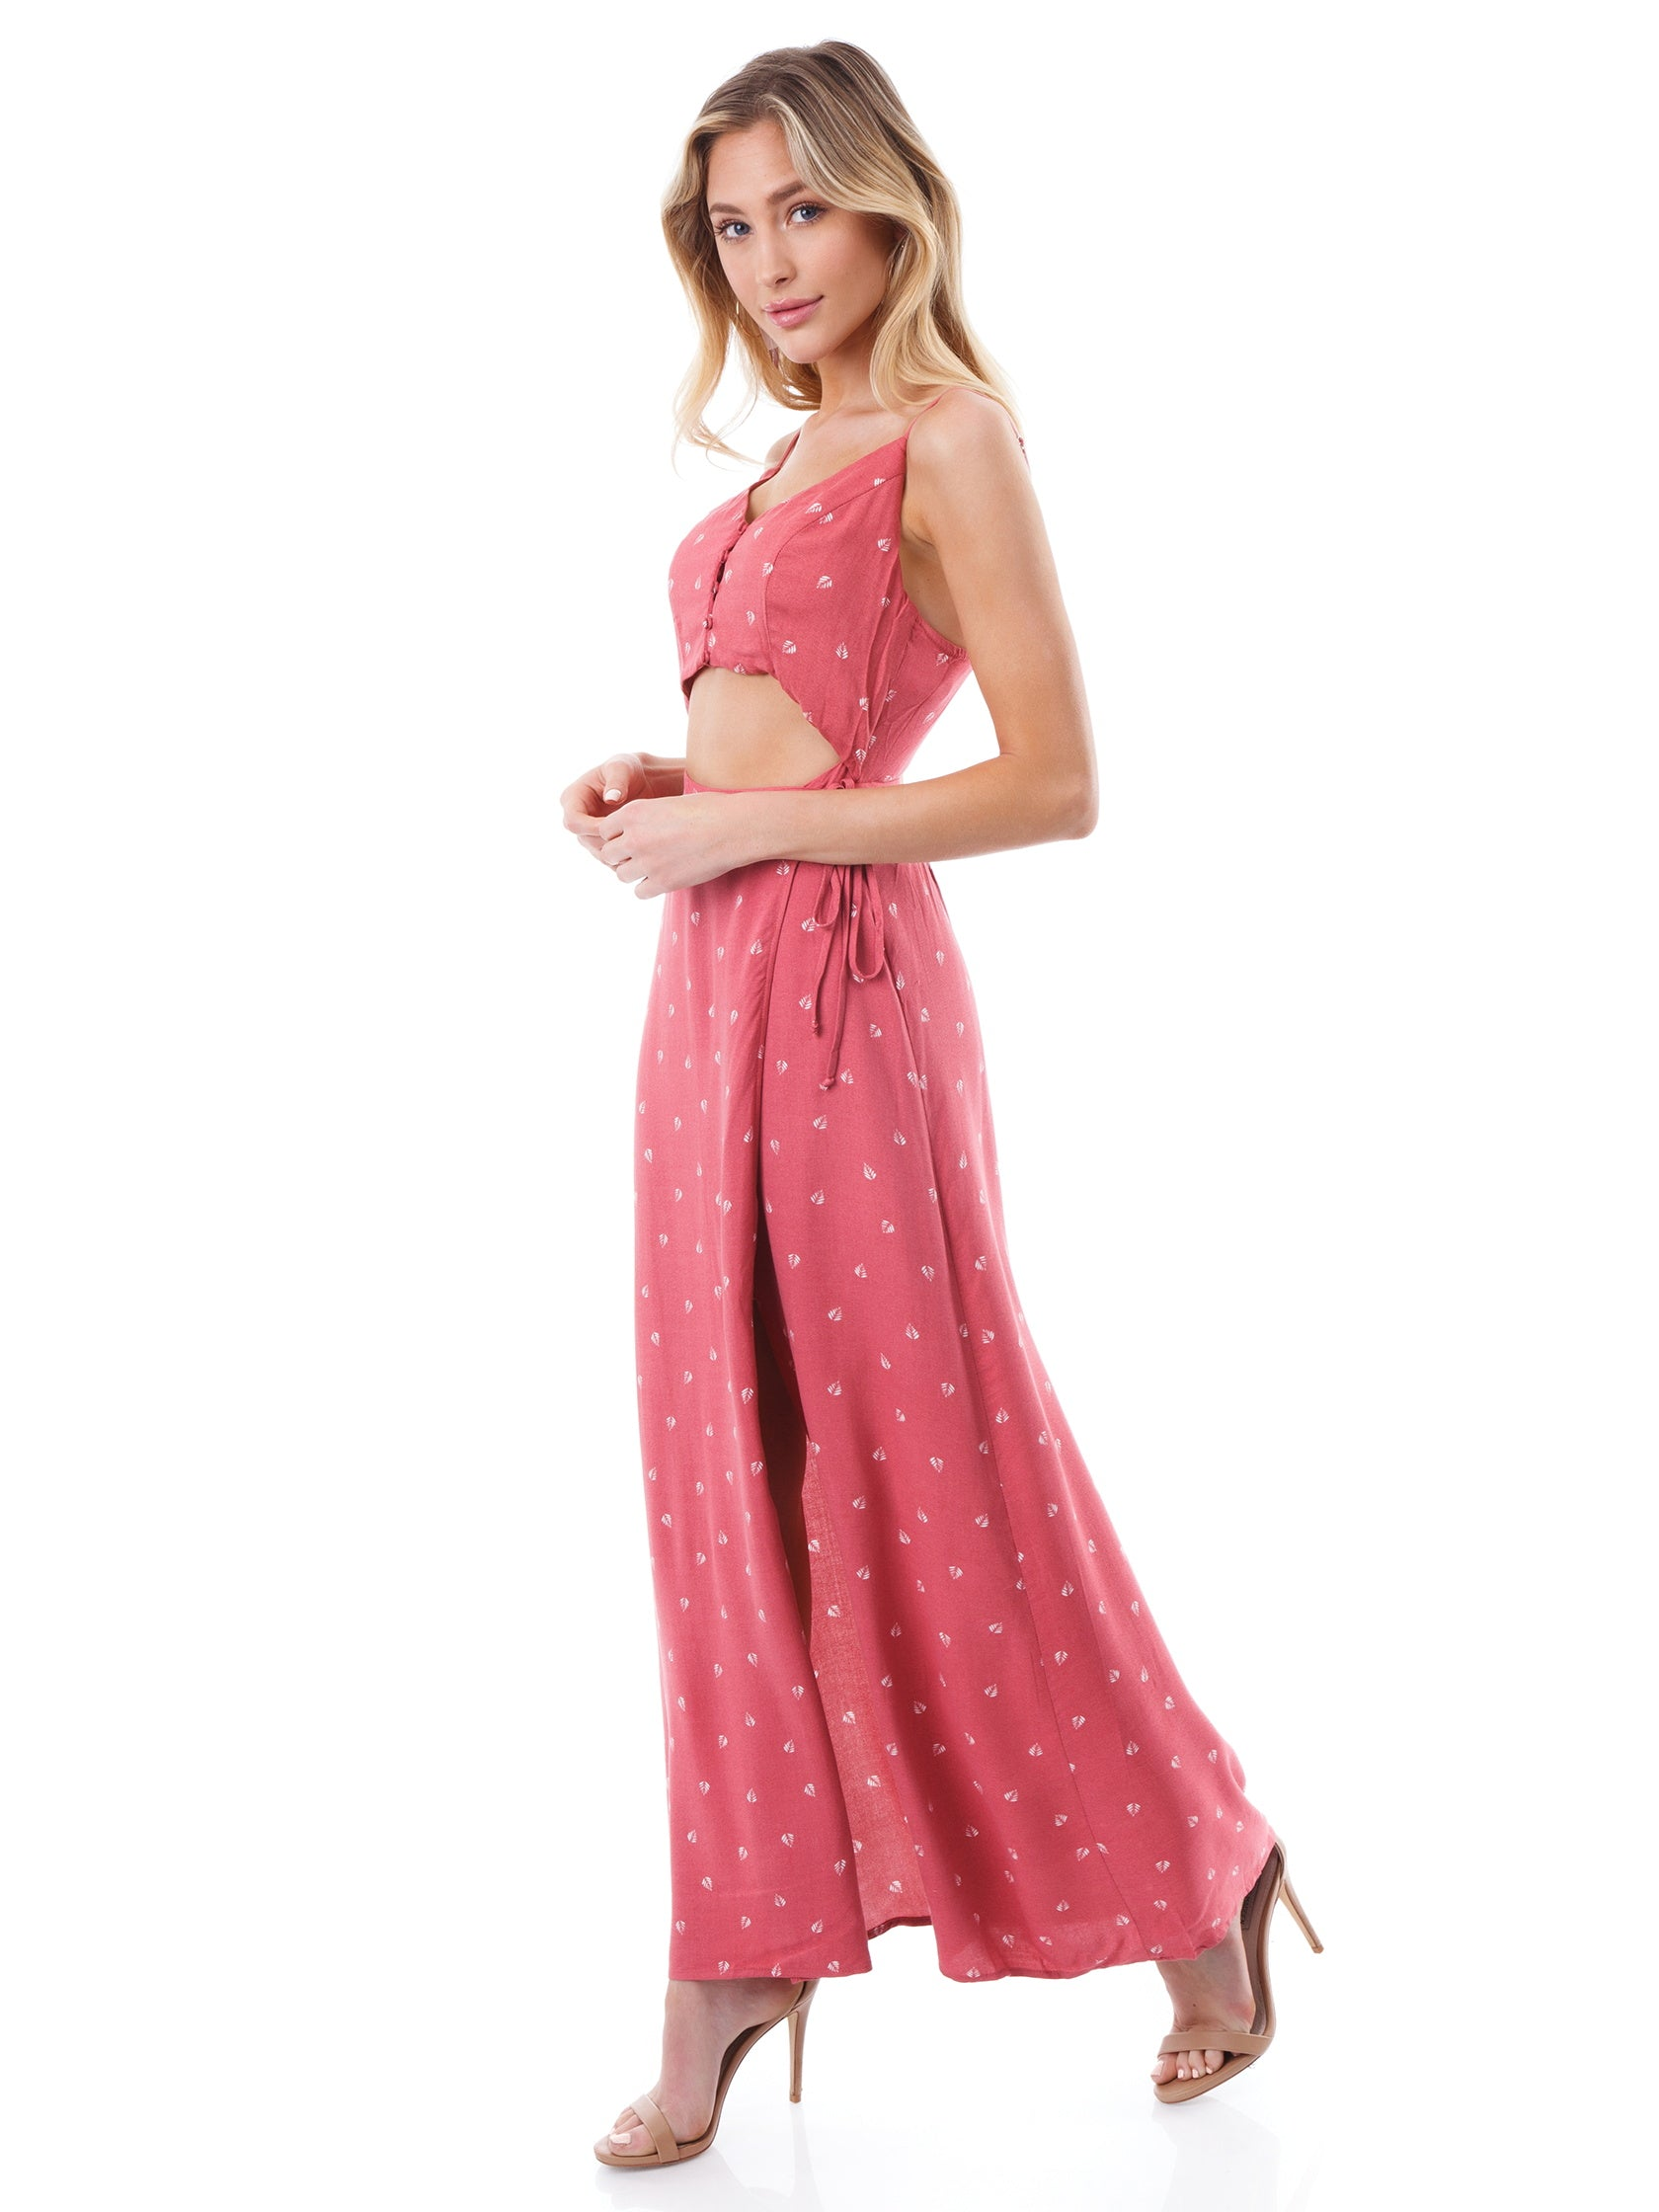 Woman wearing a dress rental from Lush called Sleeveless Wrap Maxi Dress